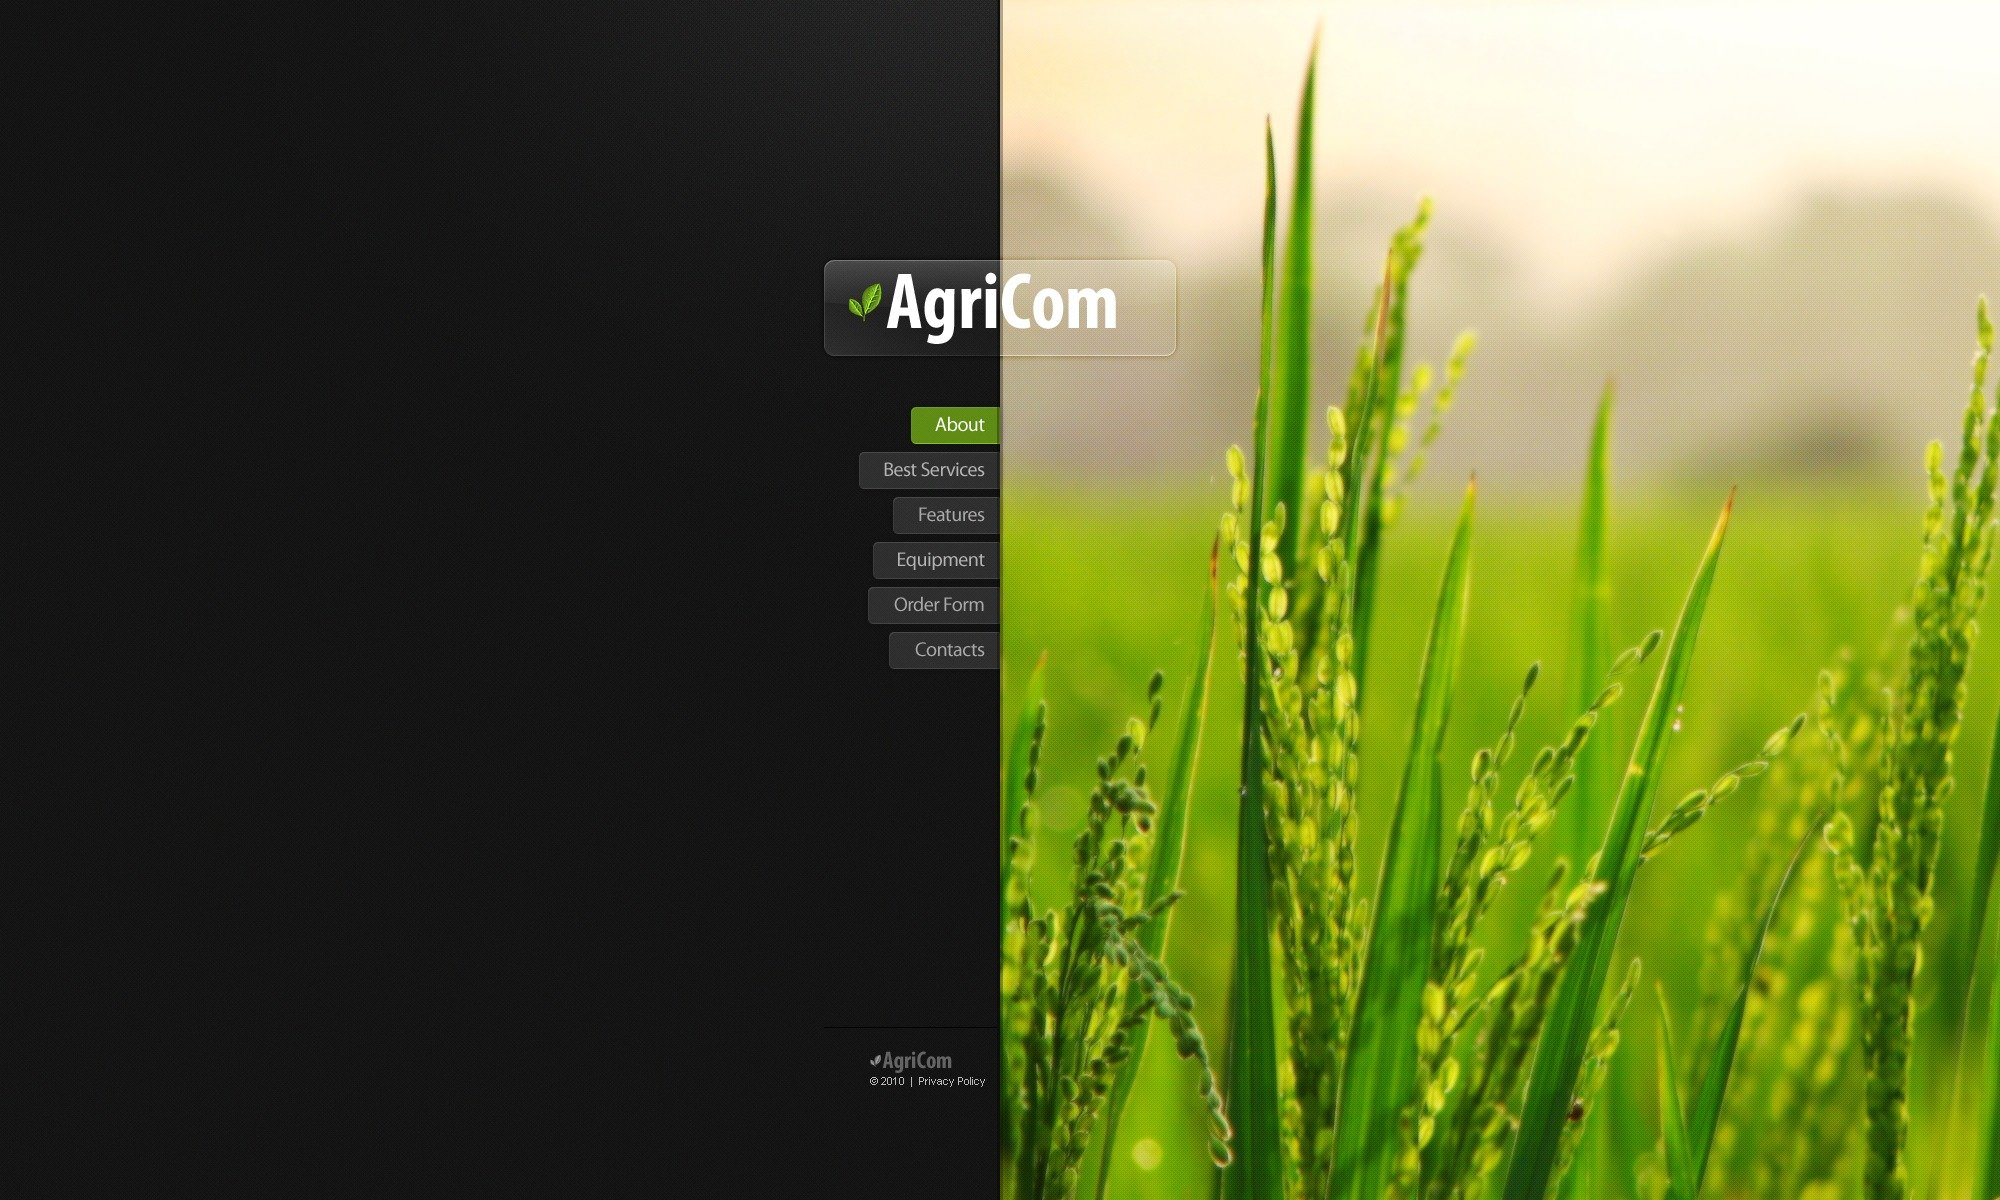 The Agricom Agriculture Company PSD Design 54483, one of the best PSD templates of its kind (agriculture, wide), also known as agricom agriculture company PSD template, business PSD template, grain-crops PSD template, cereals PSD template, field PSD template, combine PSD template, harvest PSD template, farming PSD template, plants PSD template, services PSD template, products solutions PSD template, market PSD template, delivery PSD template, resource PSD template, grassland PSD template, equipment PSD template, nitrates PSD template, fertilizer PSD template, clients PSD template, partners PSD template, innovations PSD template, support PSD template, information dealer PSD template, stocks PSD template, team and related with agricom agriculture company, business, grain-crops, cereals, field, combine, harvest, farming, plants, services, products solutions, market, delivery, resource, grassland, equipment, nitrates, fertilizer, clients, partners, innovations, support, information dealer, stocks, team, etc.